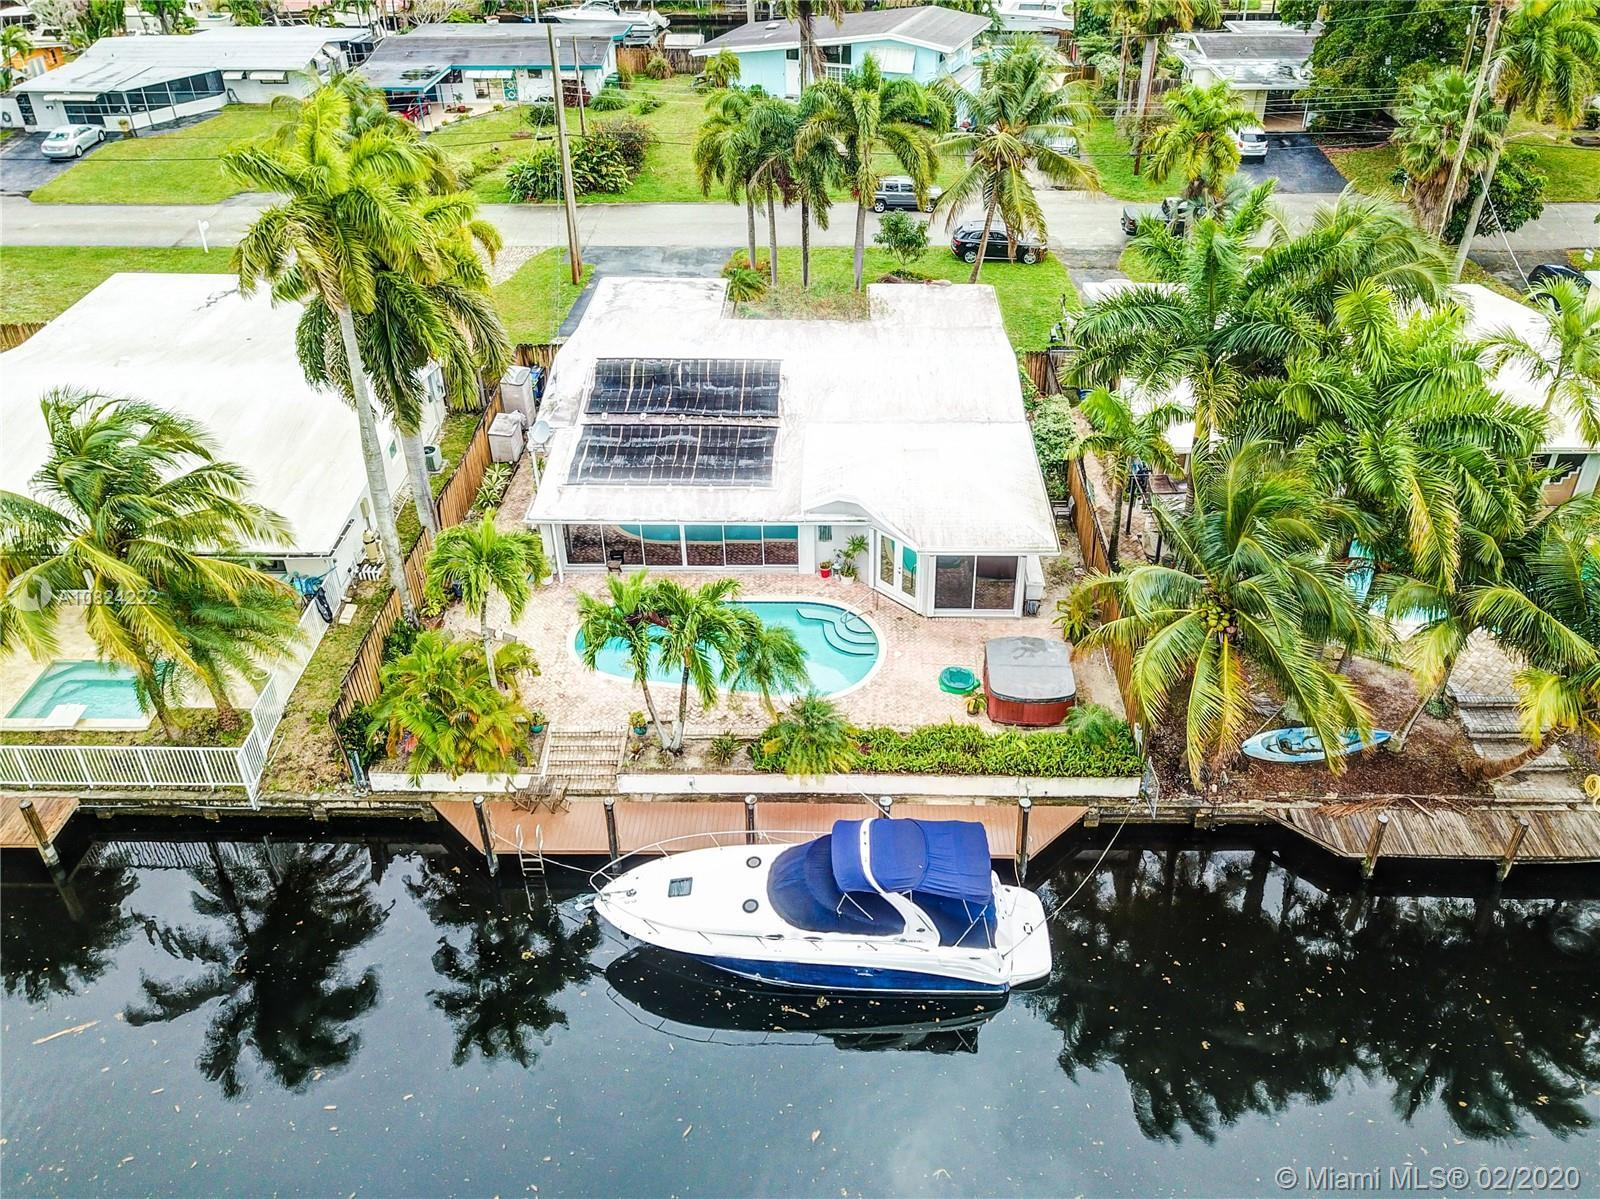 Gorgeous 4 bed/4bath home in the heart of Riverland in Fort Lauderdale! Huge open floor plan, over 2